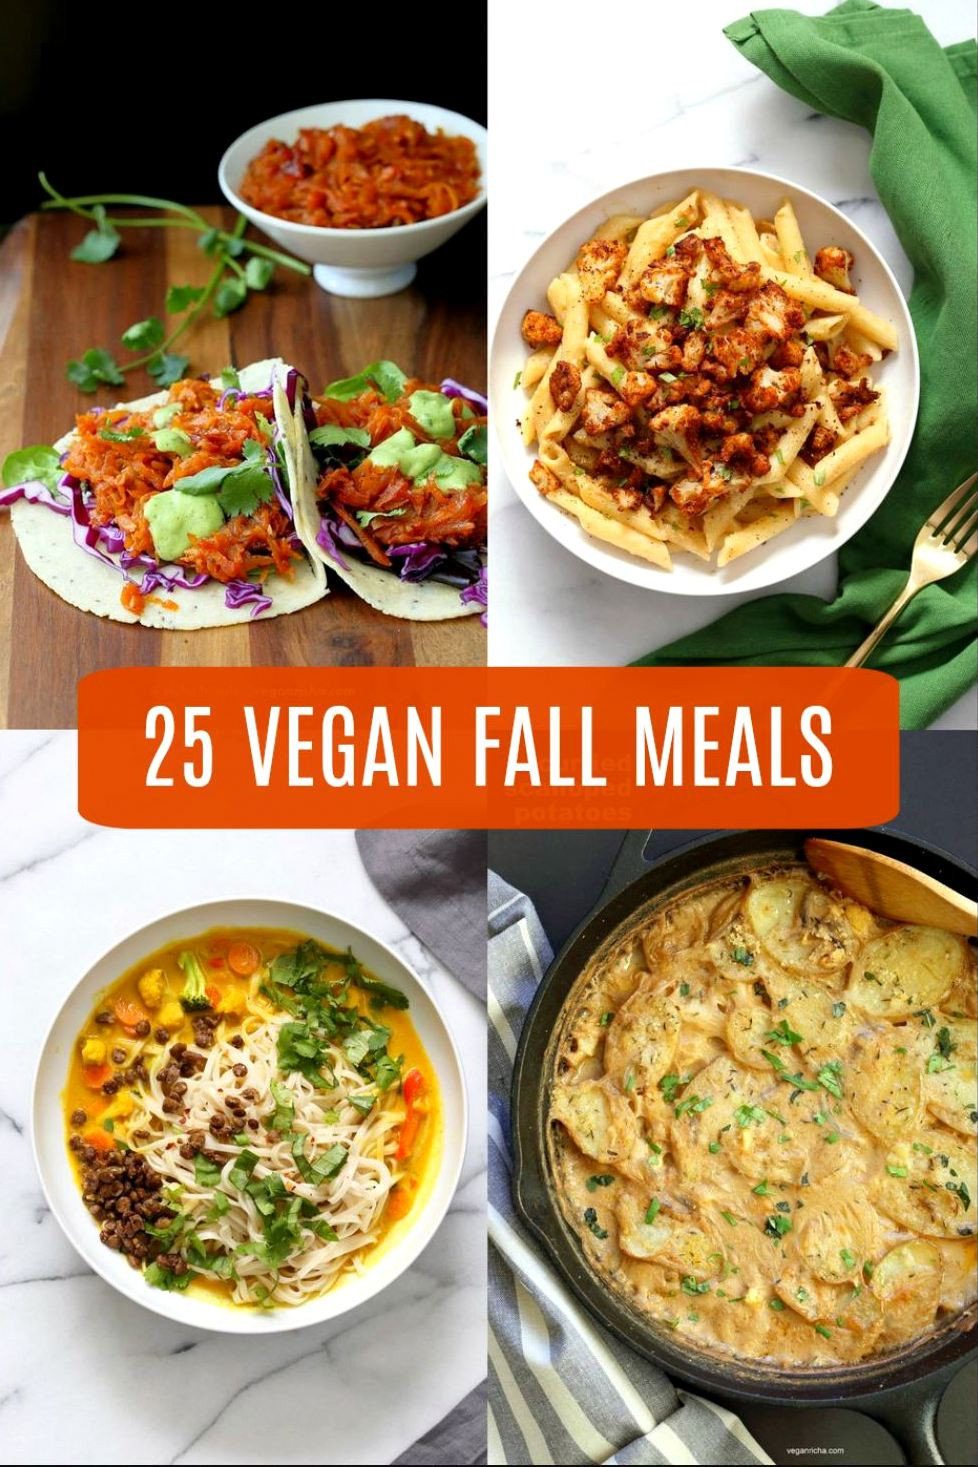 Fall Vegan Recipes  25 Vegan Fall Meals for a chilly day 1 Pot Gluten free